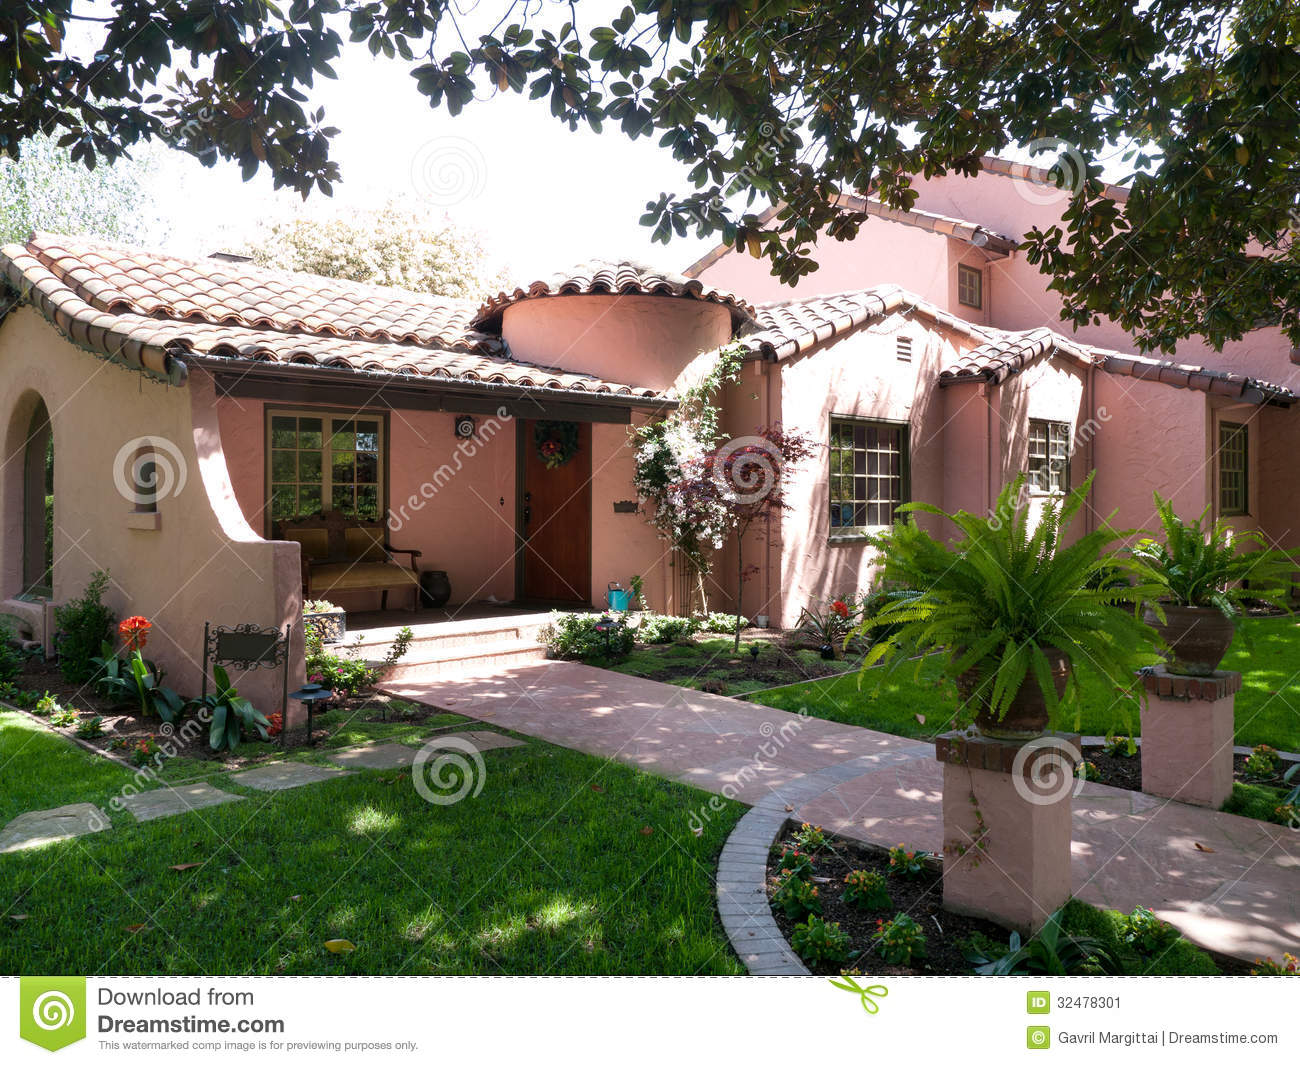 Luxury adobe house in afternoon sun stock image image for Adobe style homes for sale